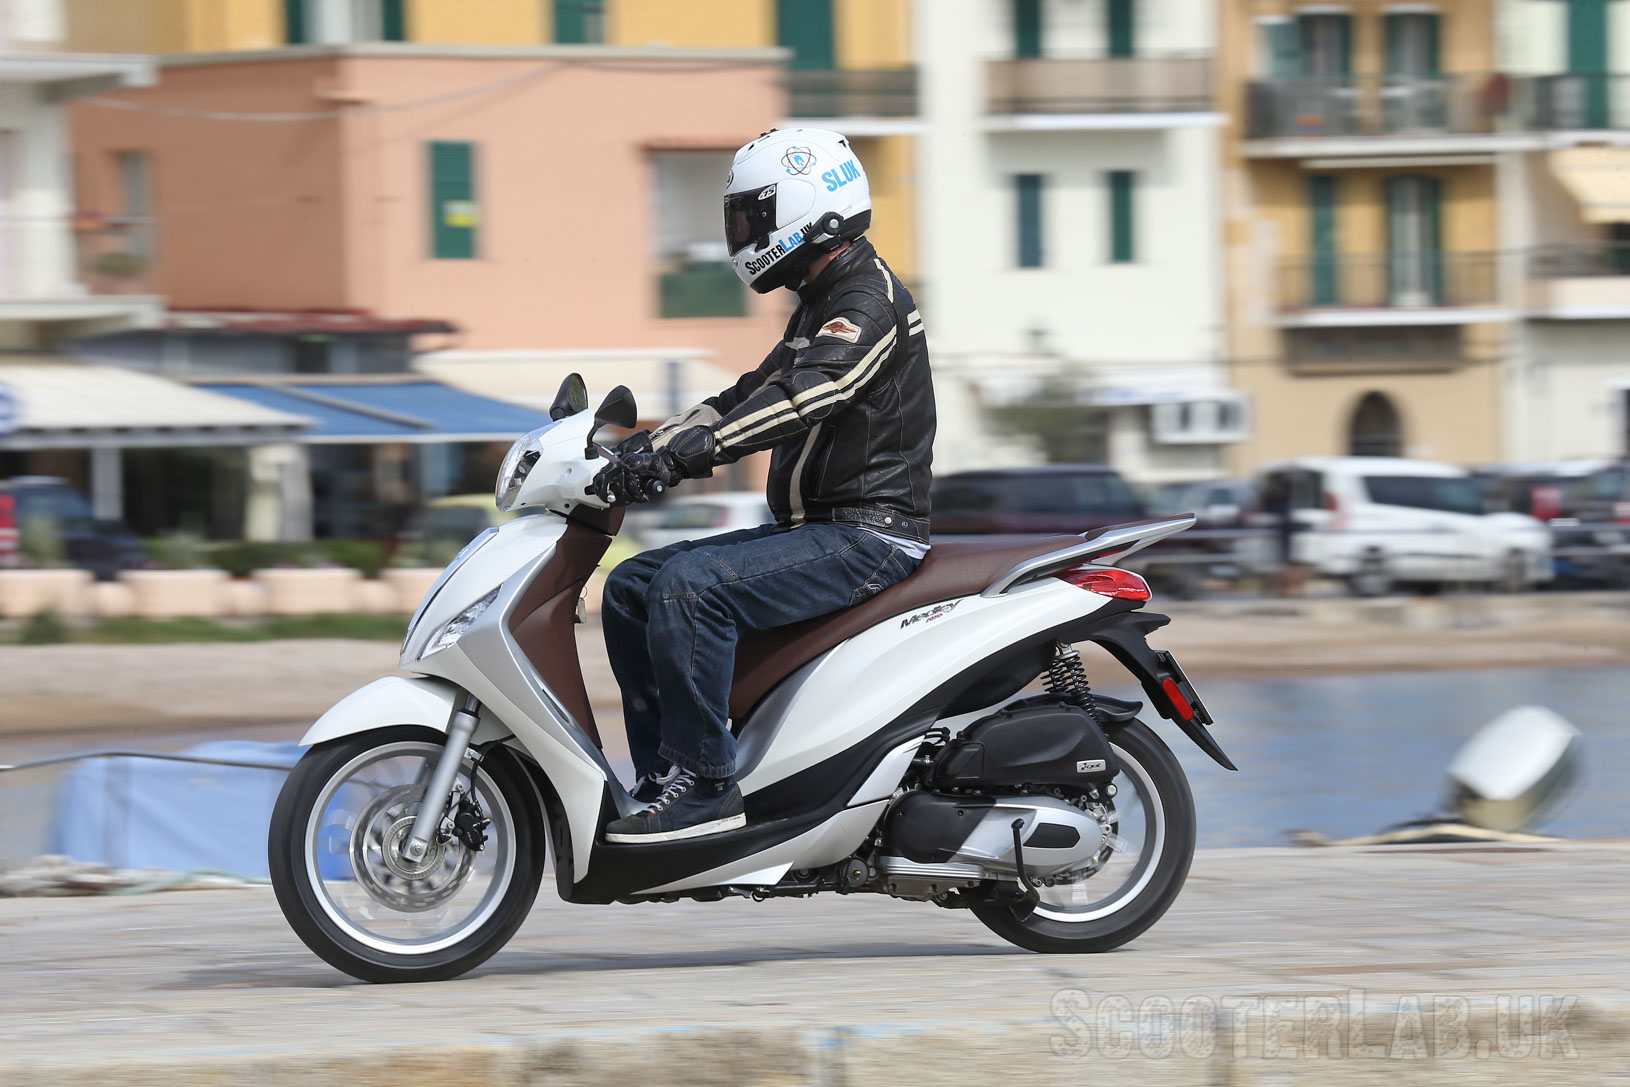 Piaggio Medley 125 launch review | ROAD TEST